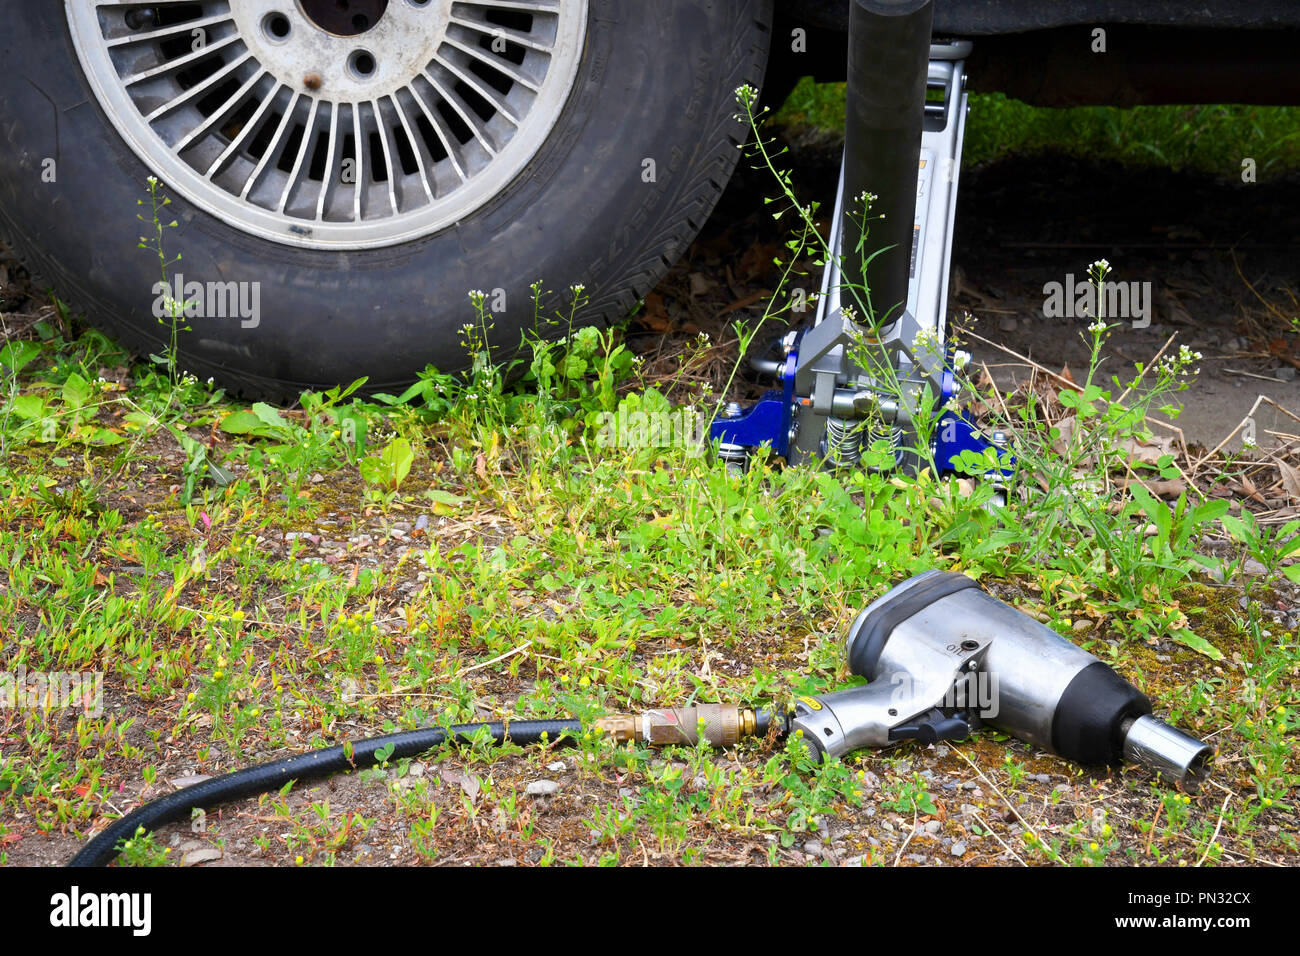 Car jack and impact torque wrench near a car tire Stock Photo